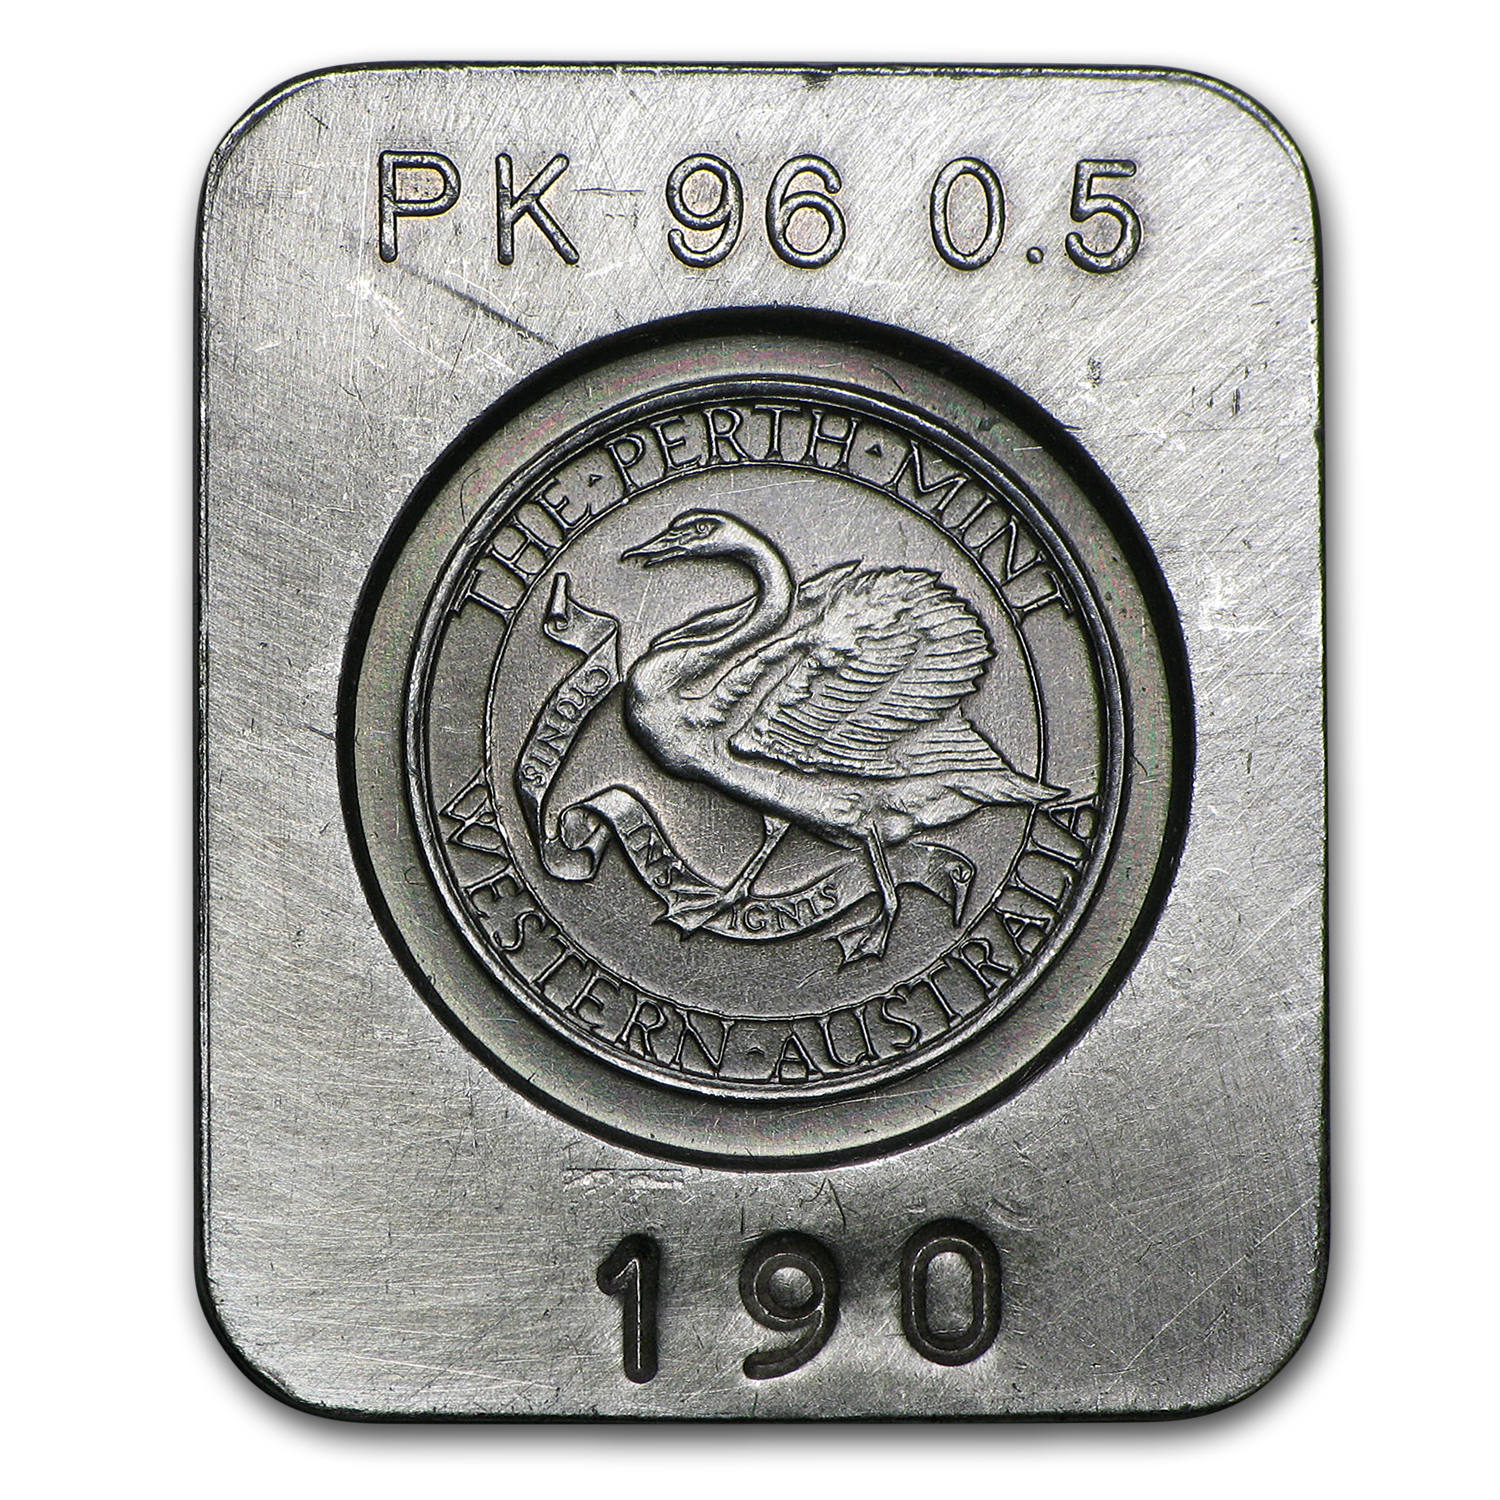 1996 1/2 oz Australian Platinum Koala (Proof)